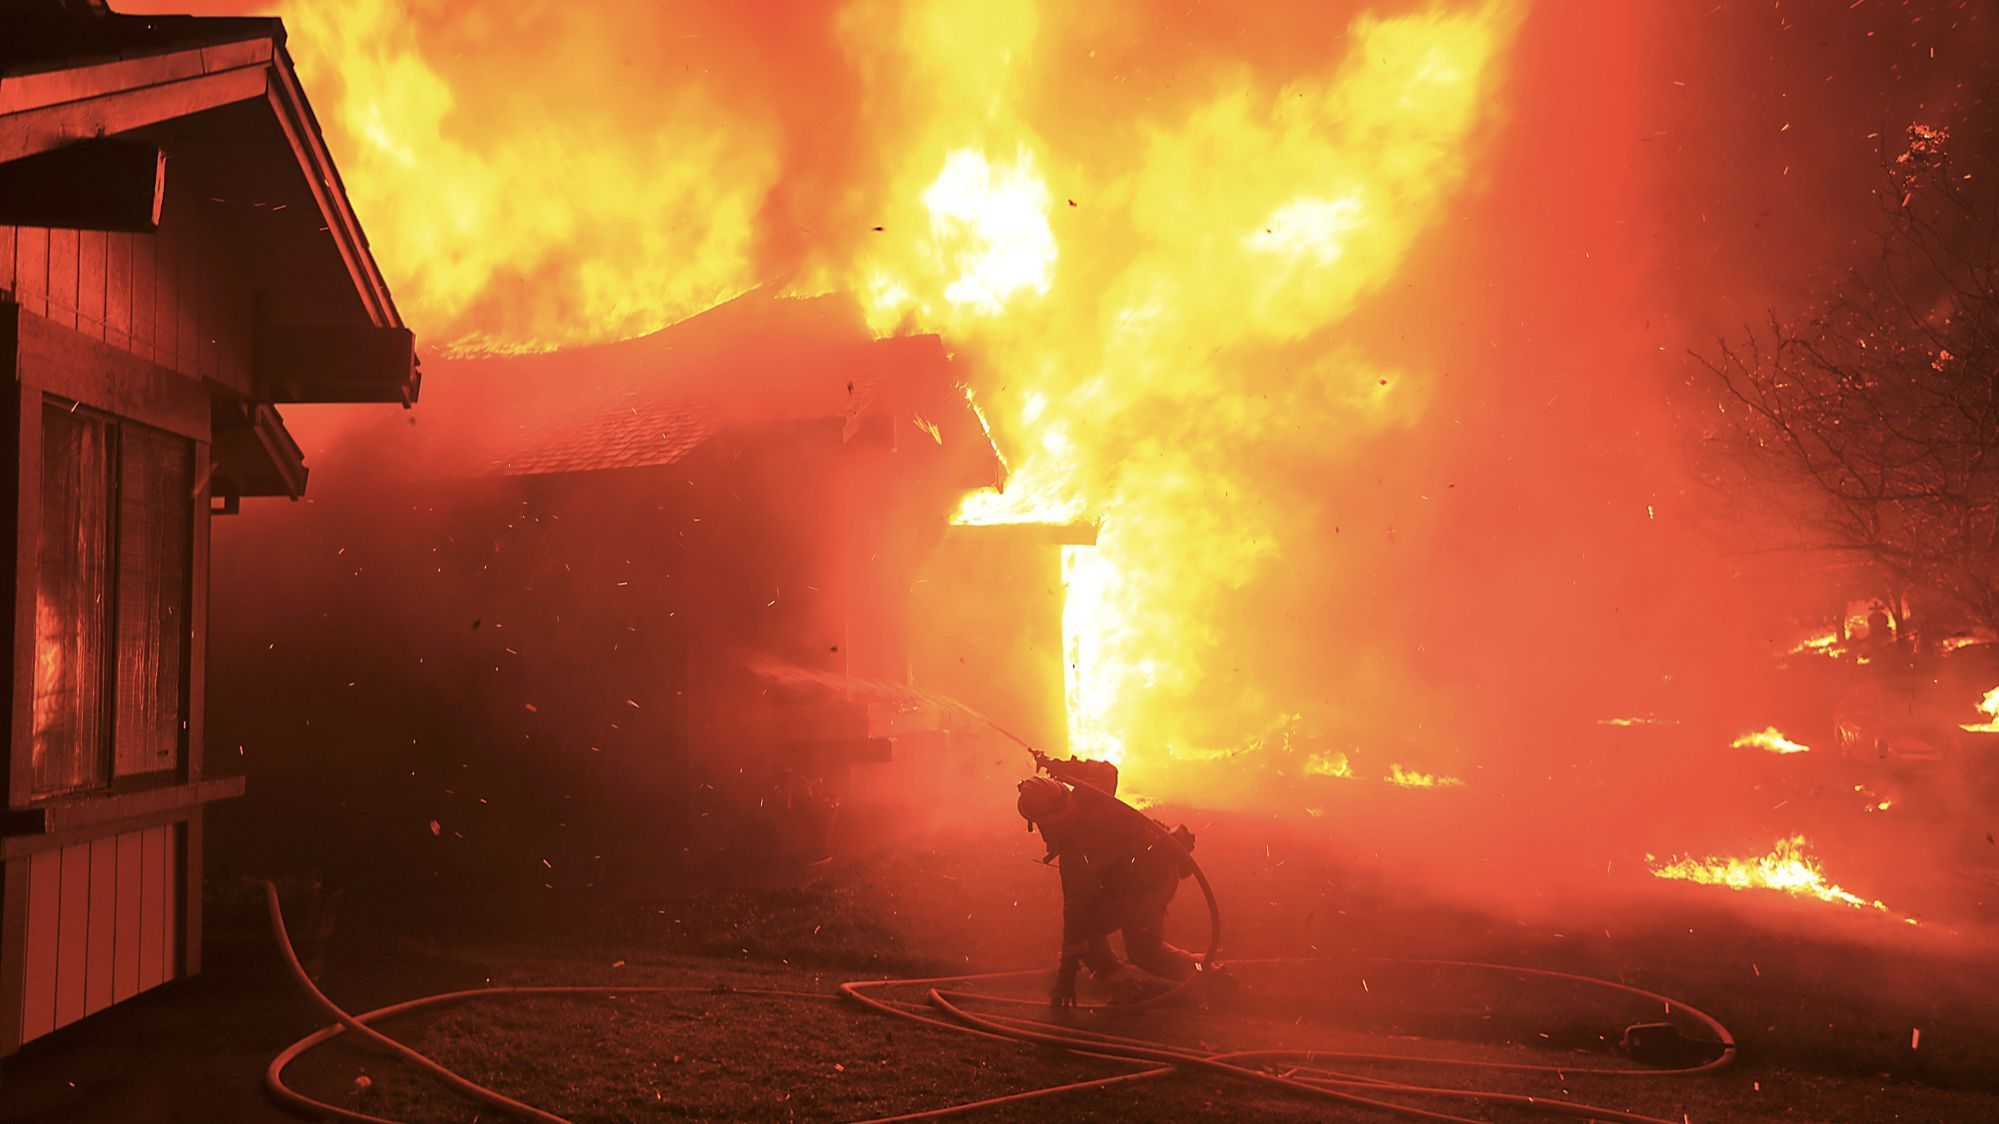 A firefighter struggles to protect a home from flames in Santa Rosa's Coffey Park neighborhood on Oct. 9, 2017.